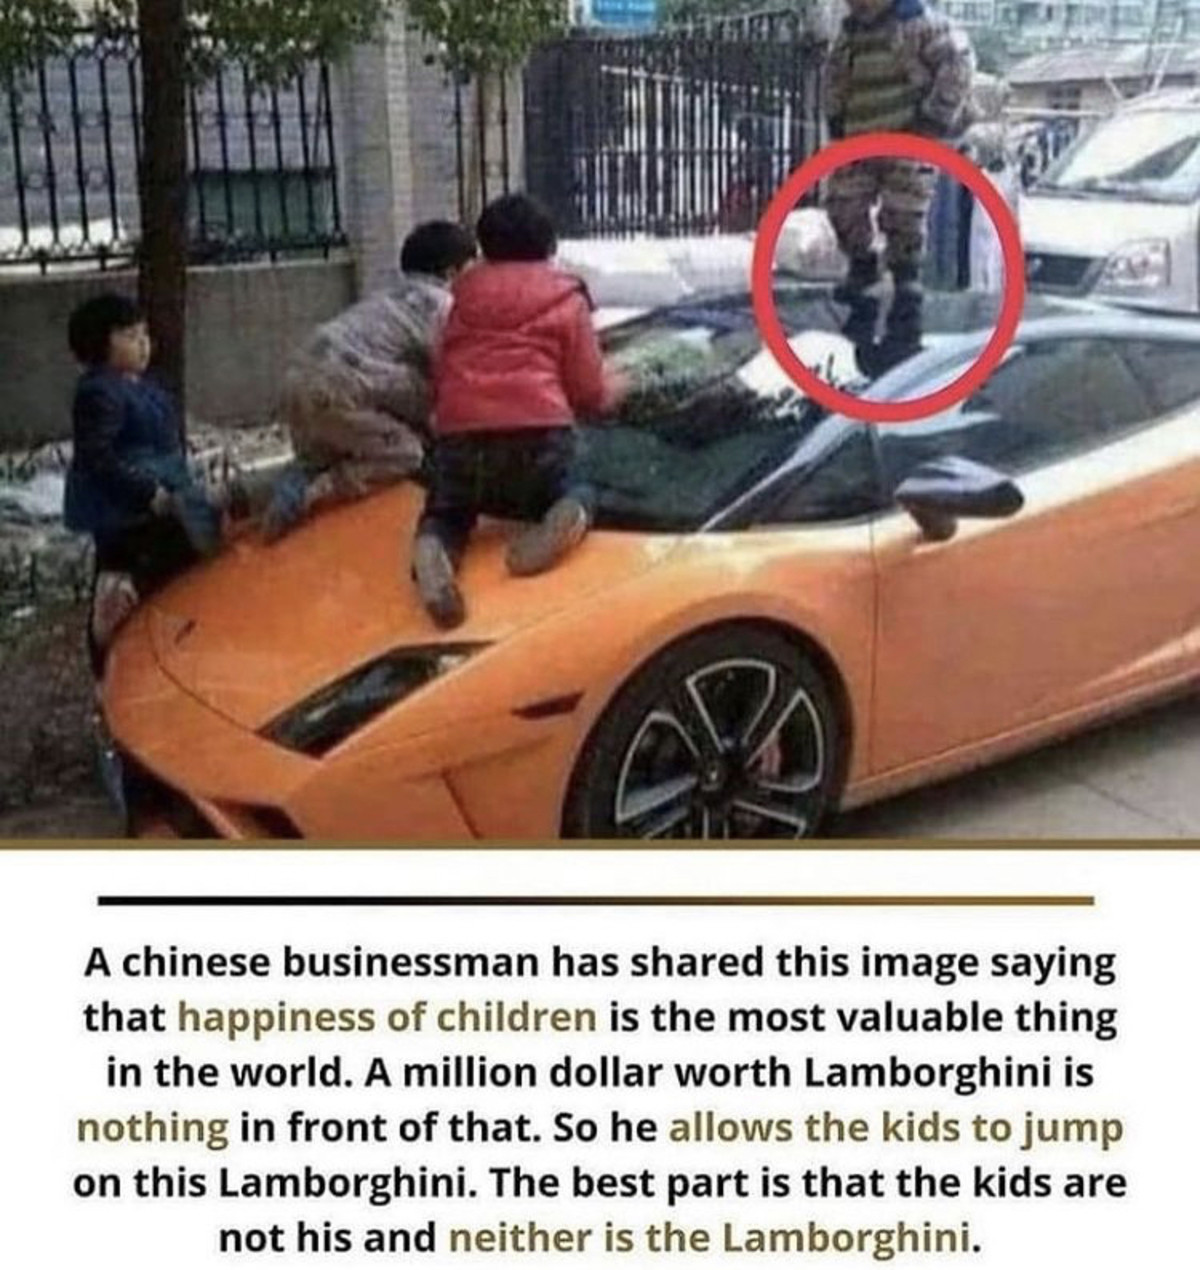 registering functional trial Mericans. .. In China, Lamborghini runs over children all the time in the wild. This is payback.